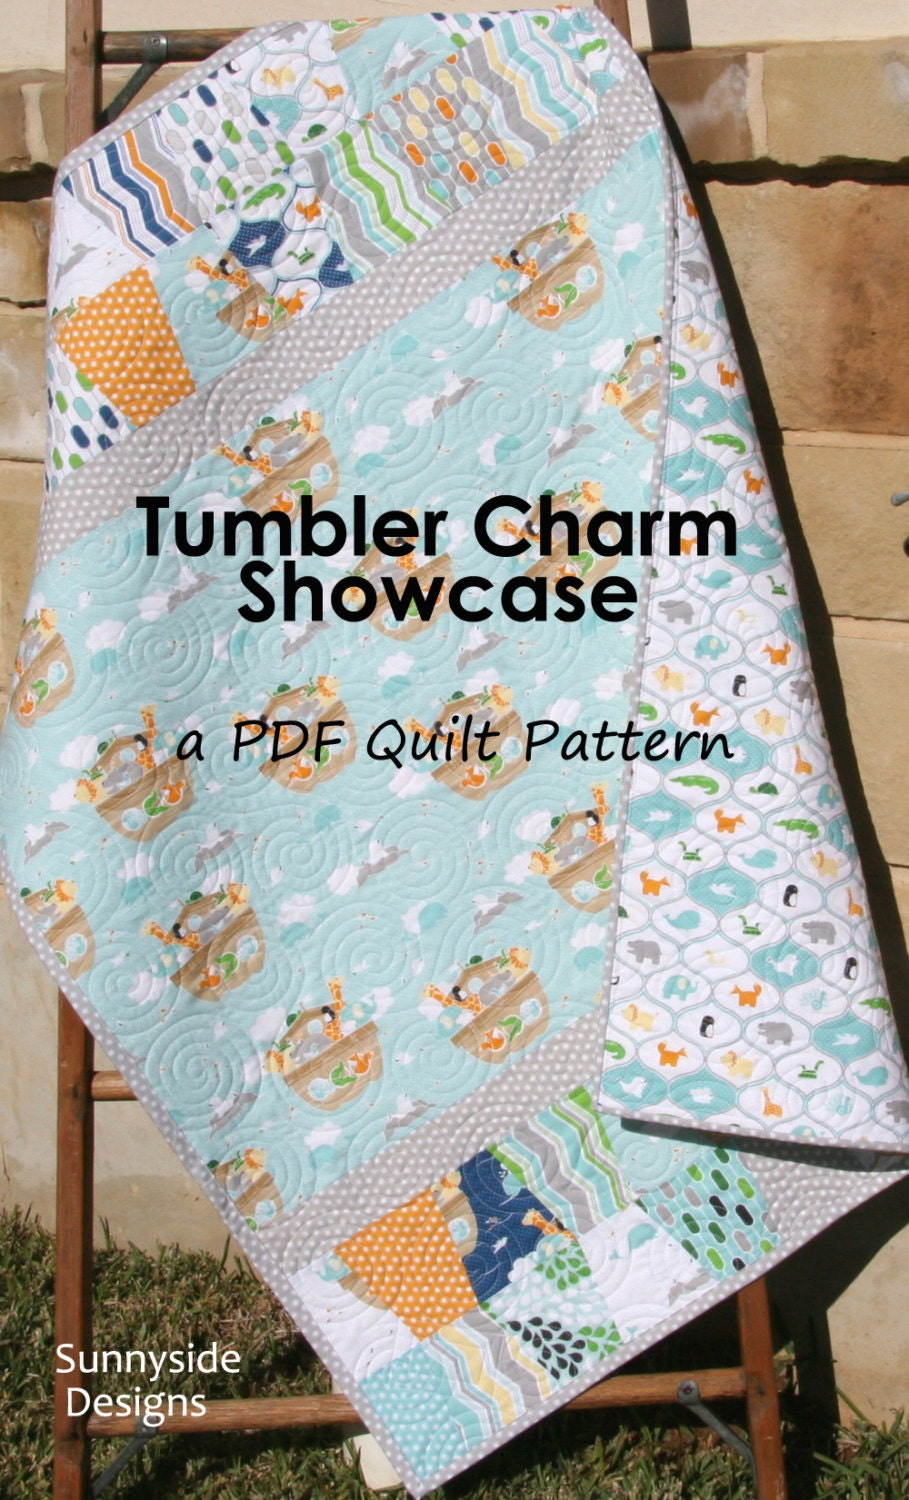 Beginner Quilt Pattern Tumbler Charm Showcase Charm Packs